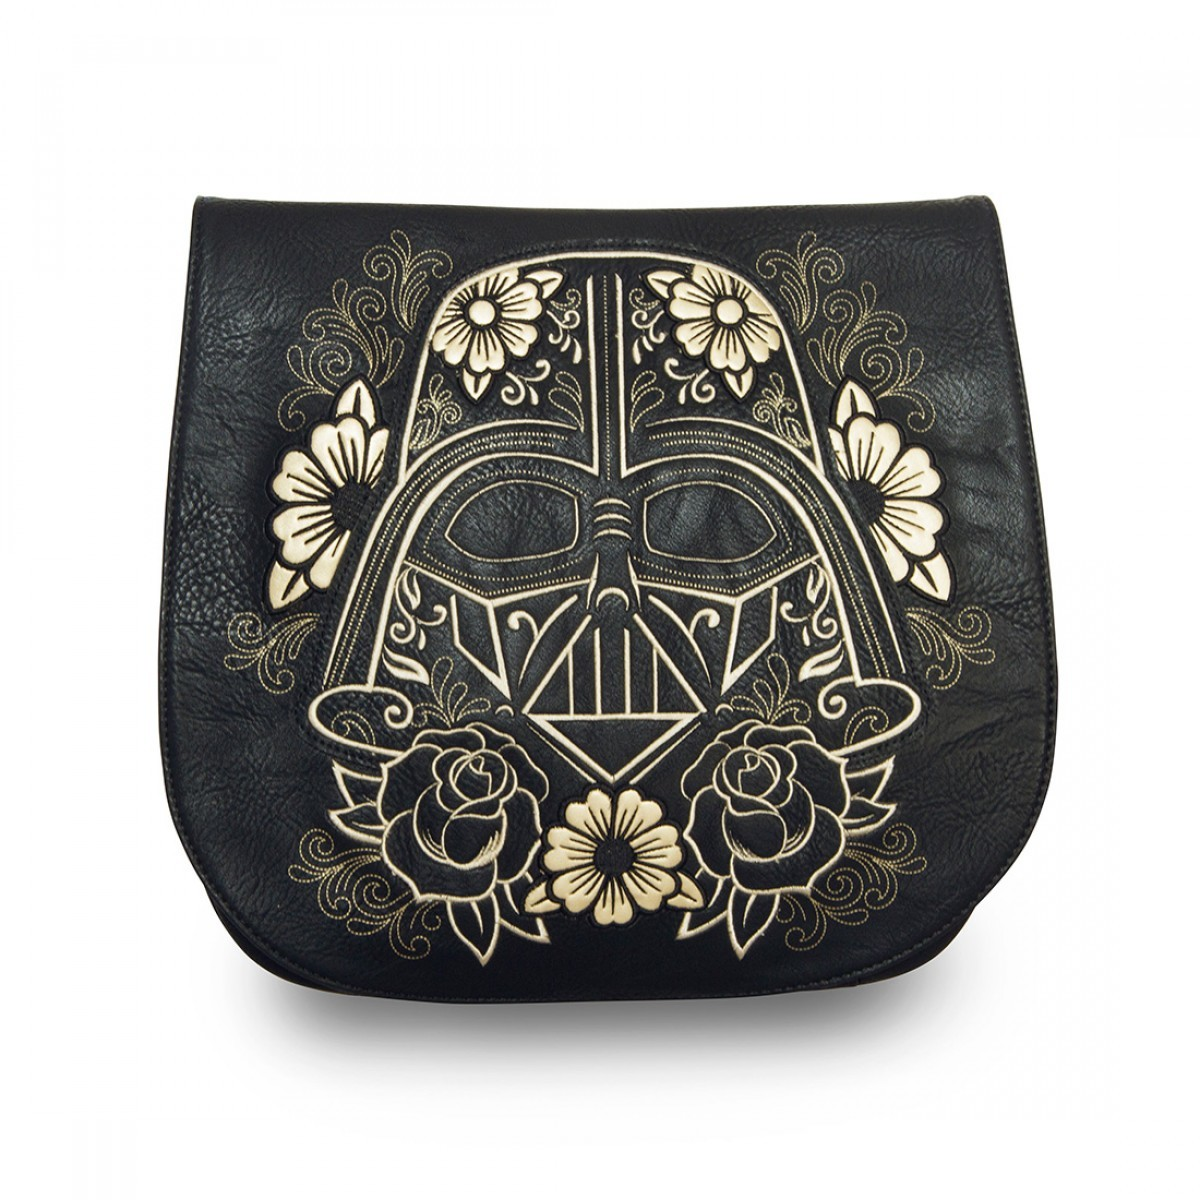 Loungefly Star Wars Darth Vader Sugar Skull Crossbody Saddle Bag image